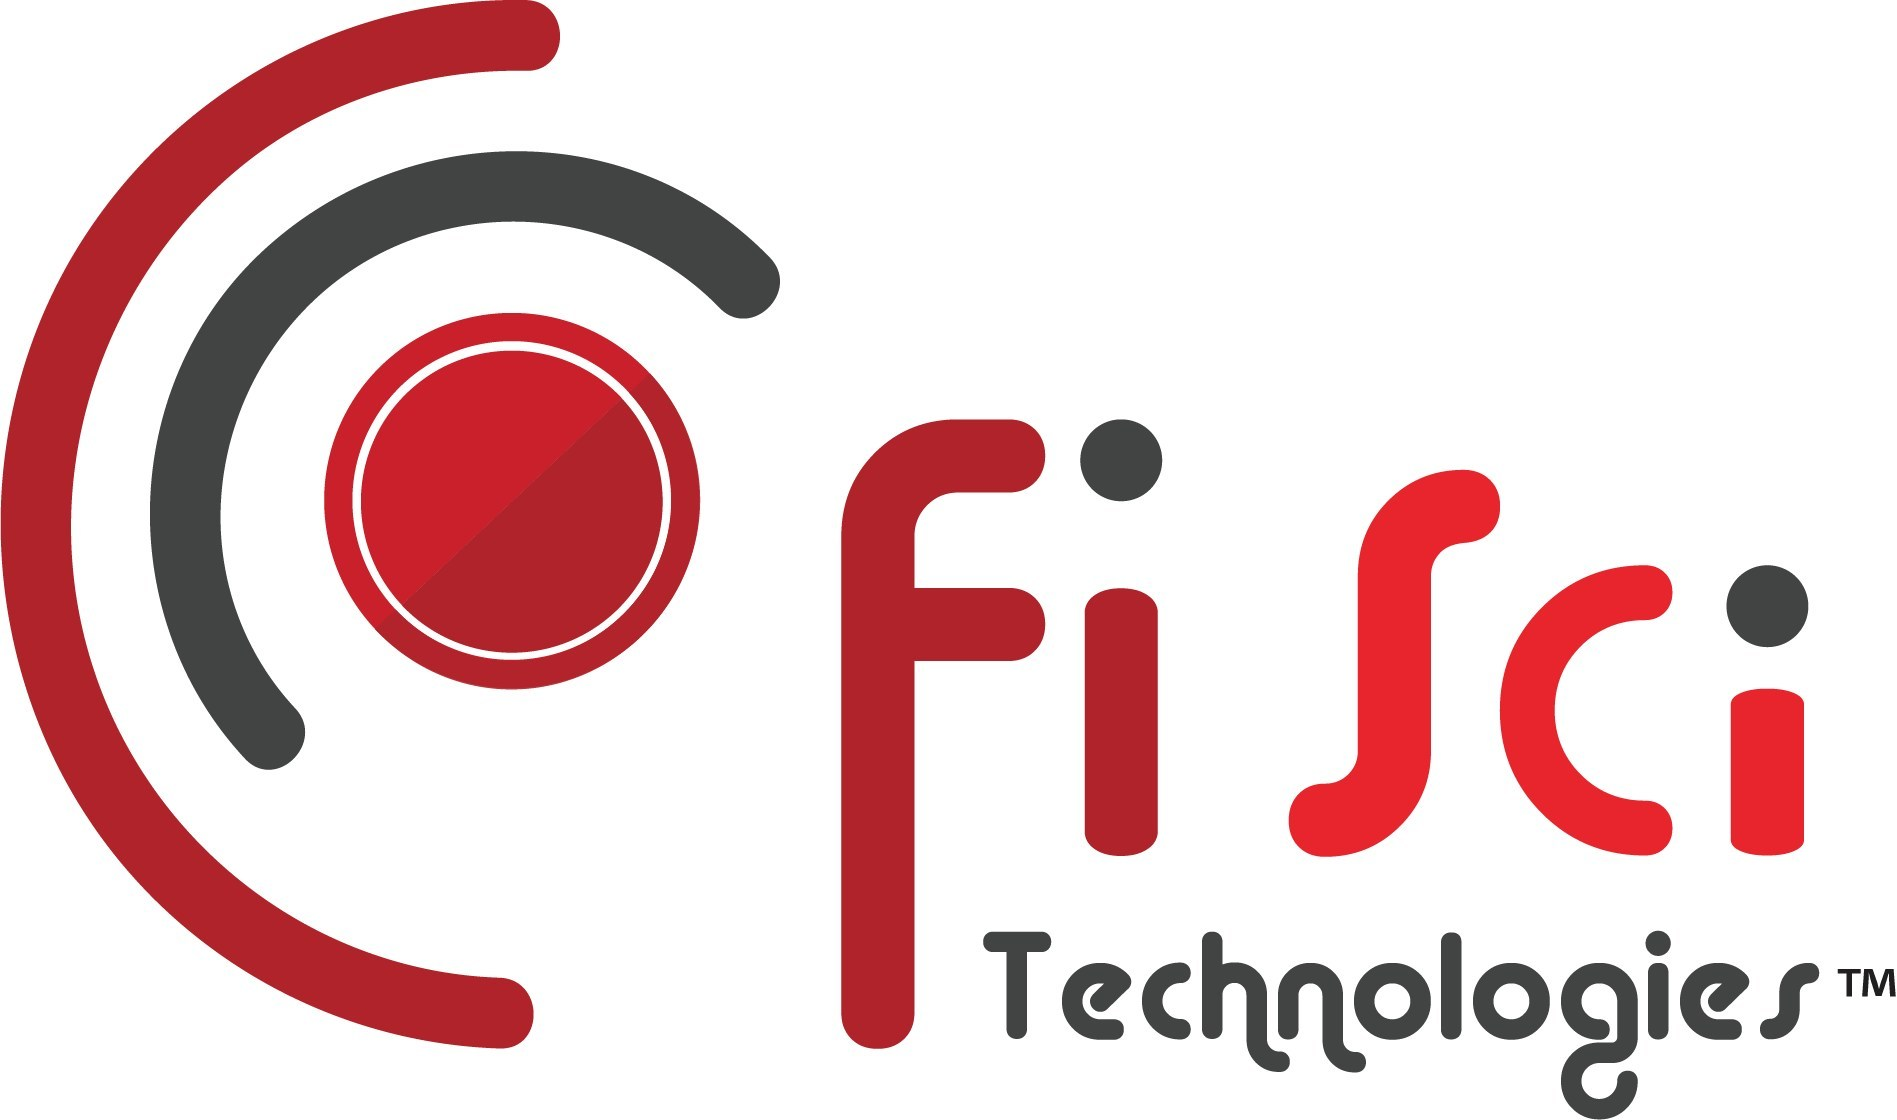 FiSci Technologies partners with educational organizations, municipalities, service providers, public safety entities, and private enterprises to provide LTE infrastructure as a service. (PRNewsfoto/FiSci Technologies)